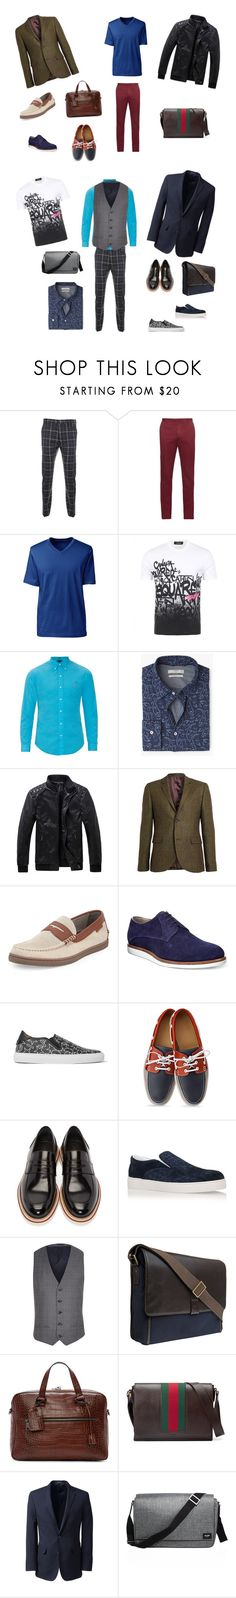 """""""2"""" by madlily86 on Polyvore featuring косметика, Vivienne Westwood Man, Incotex, Lands' End, Dsquared2, Polo Ralph Lauren, MANGO, Topman, Cole Haan и HUGO"""